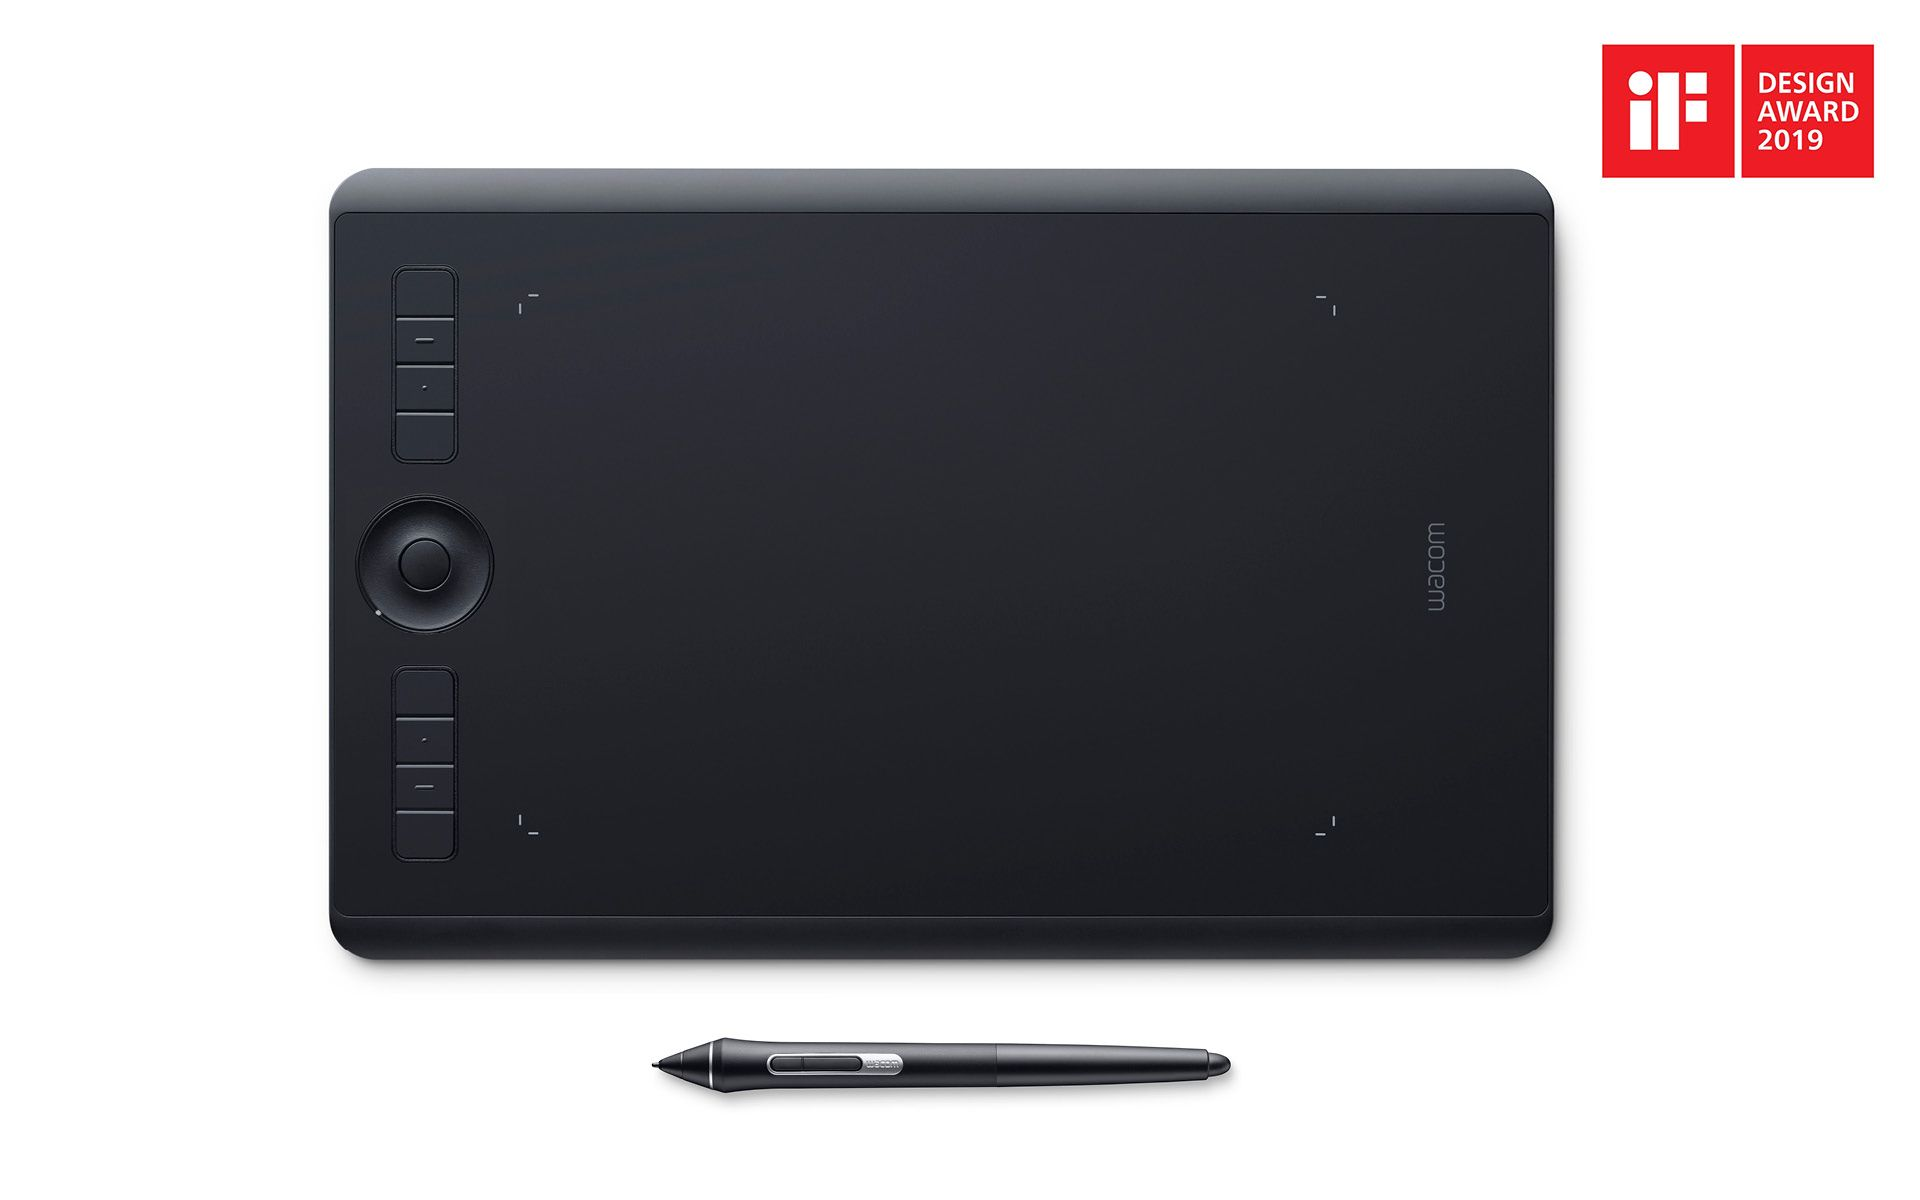 Tableta Grafica Wacom Intuos Pro M South